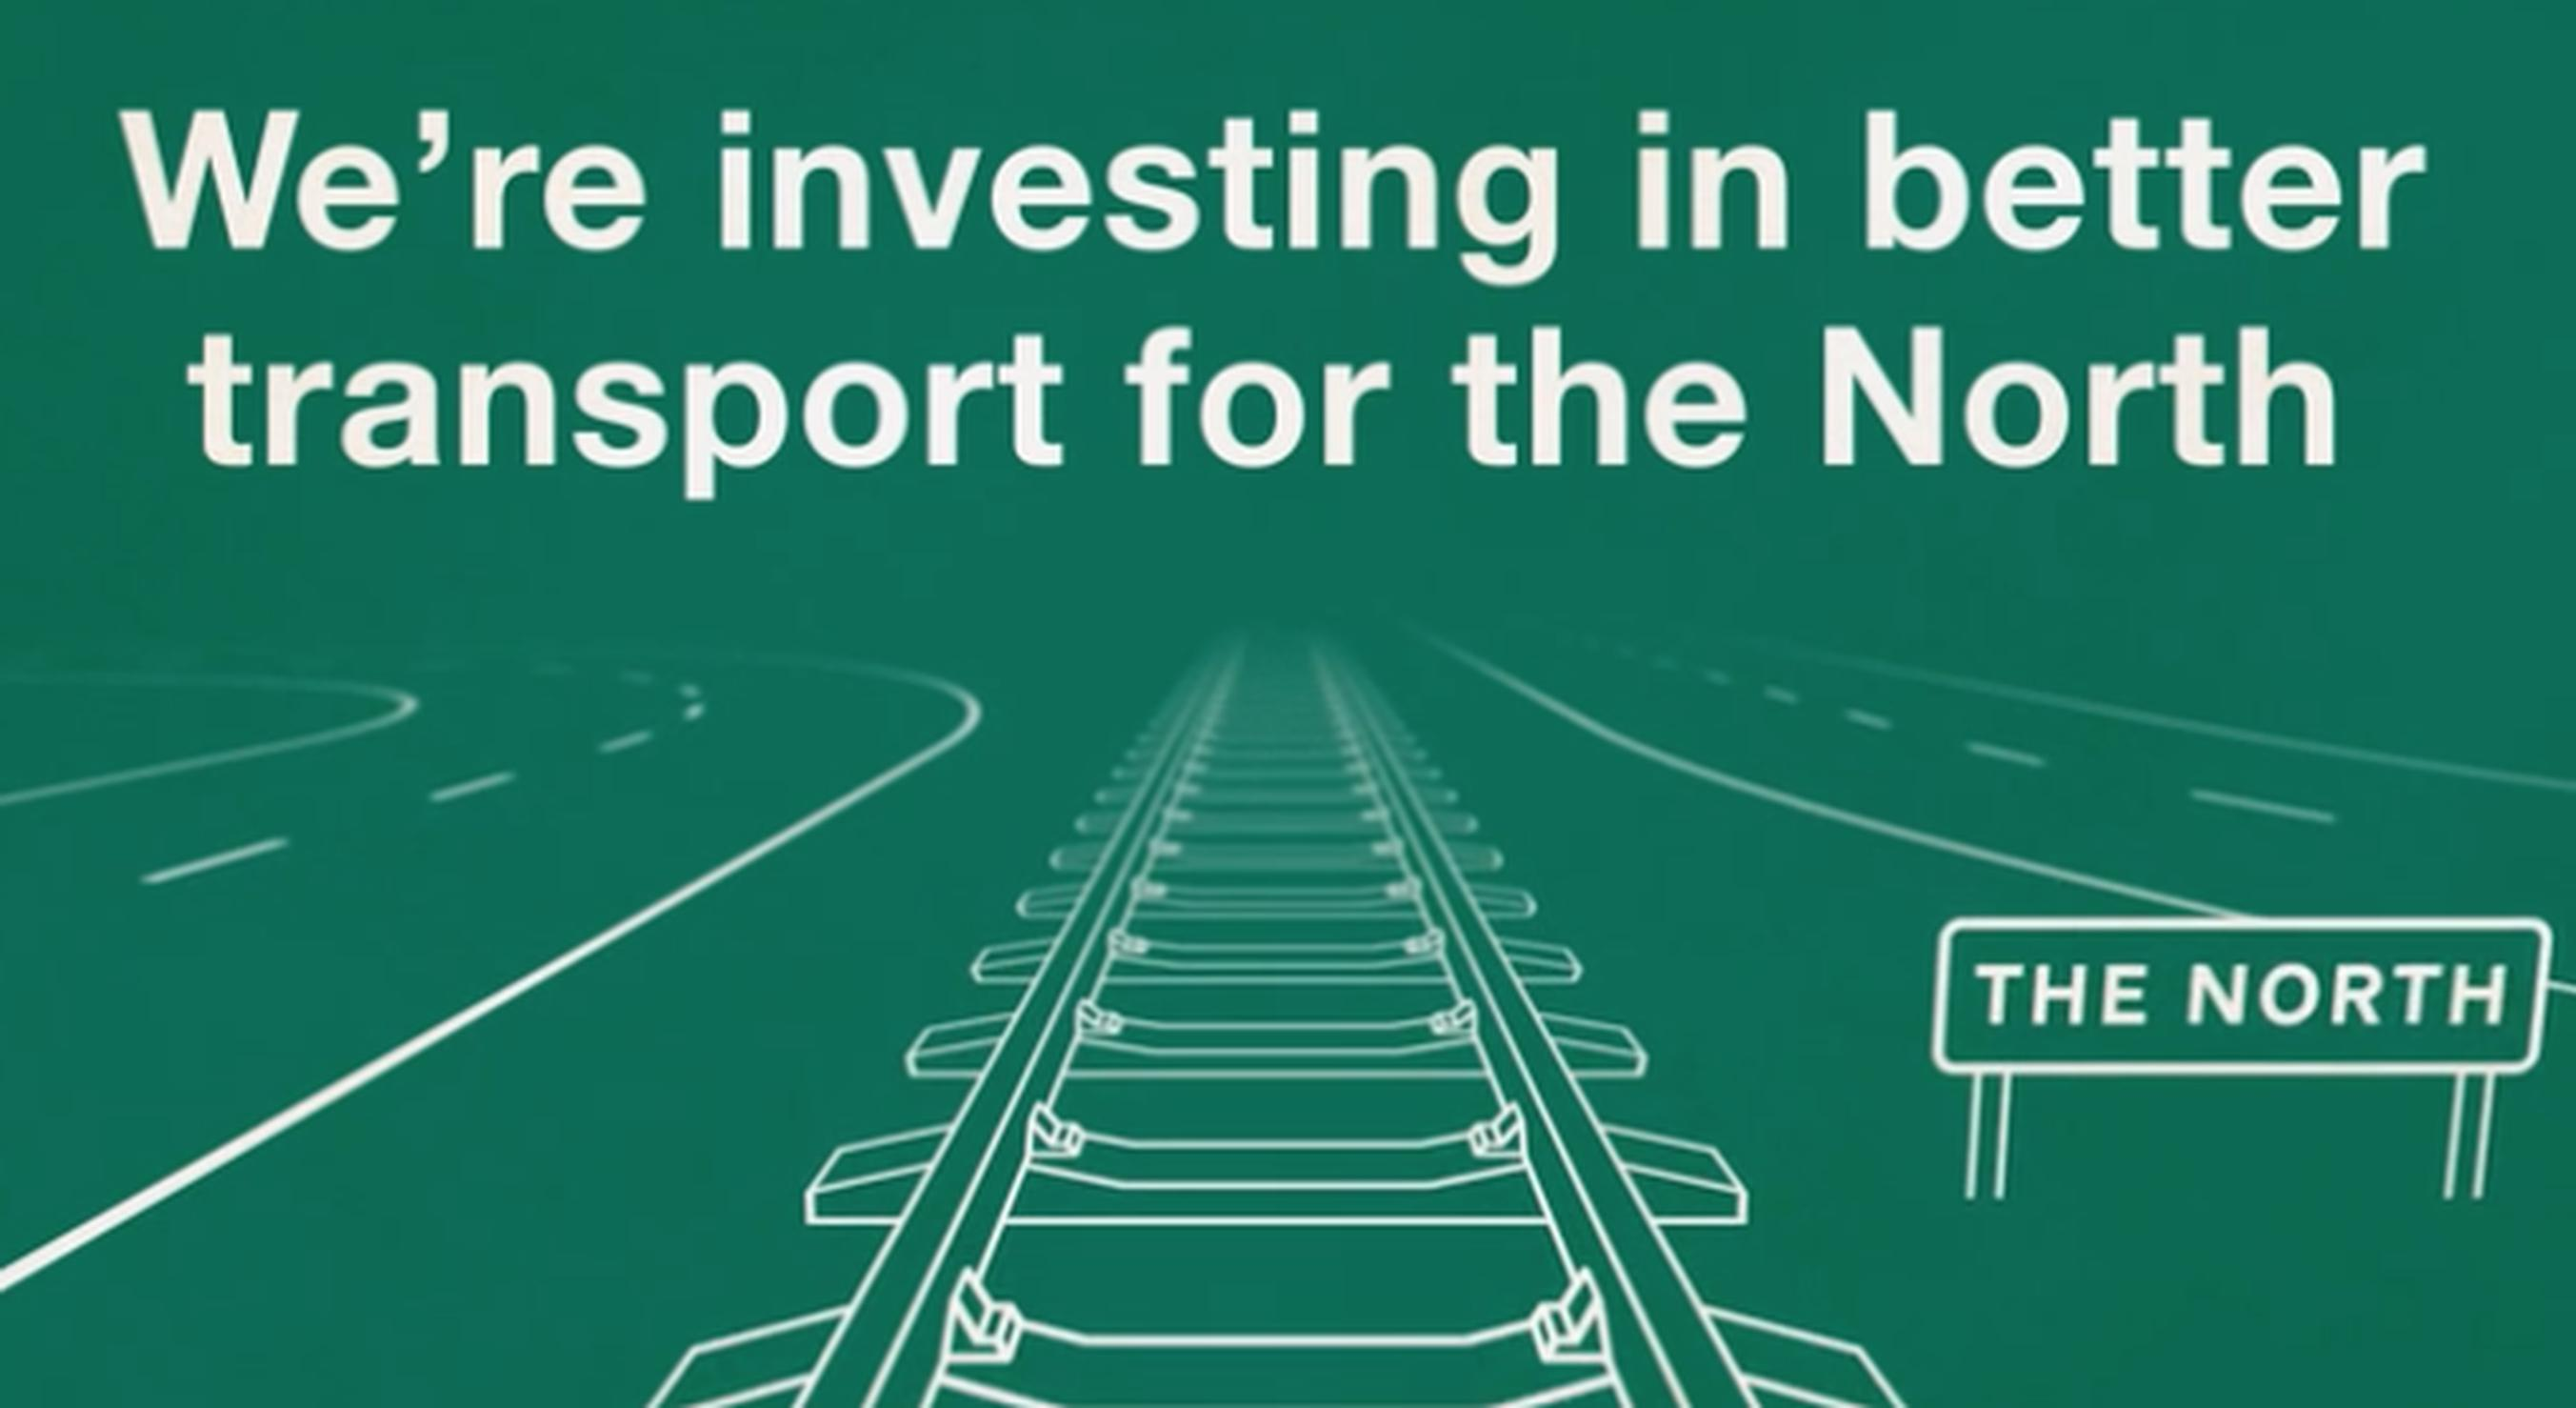 The Yorkshire Post article featured a DfT animation outlining government investments in Northern rail and road, and also better airport connections between London and the region